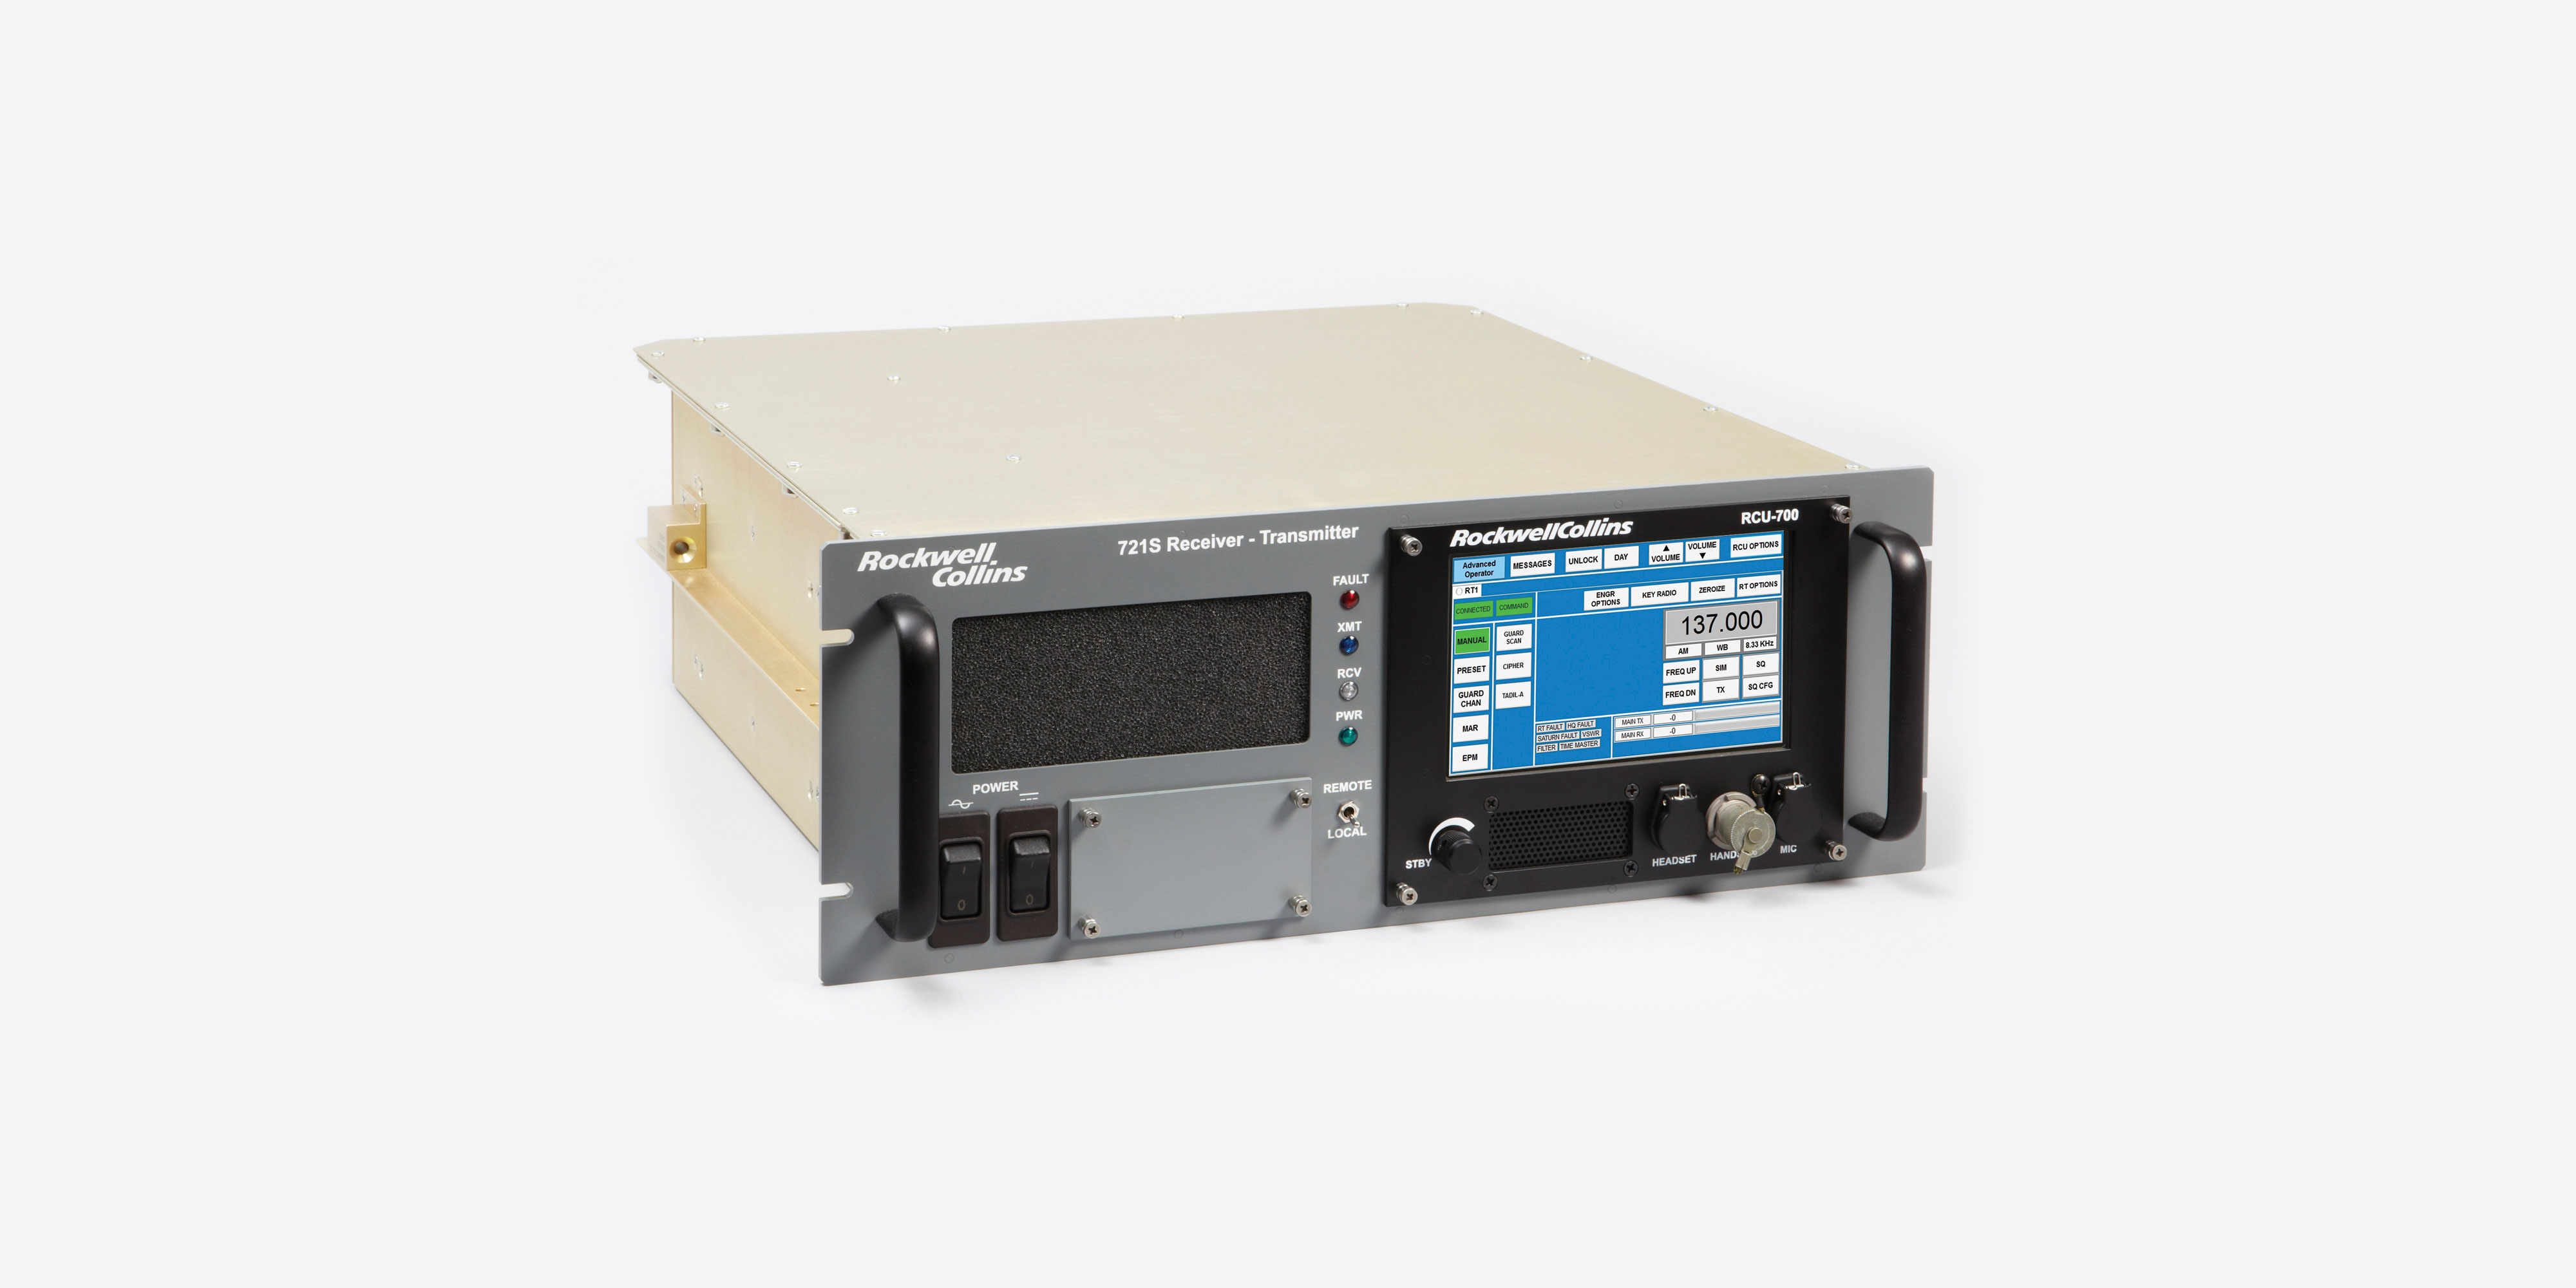 Image of the 721S radio transceiver